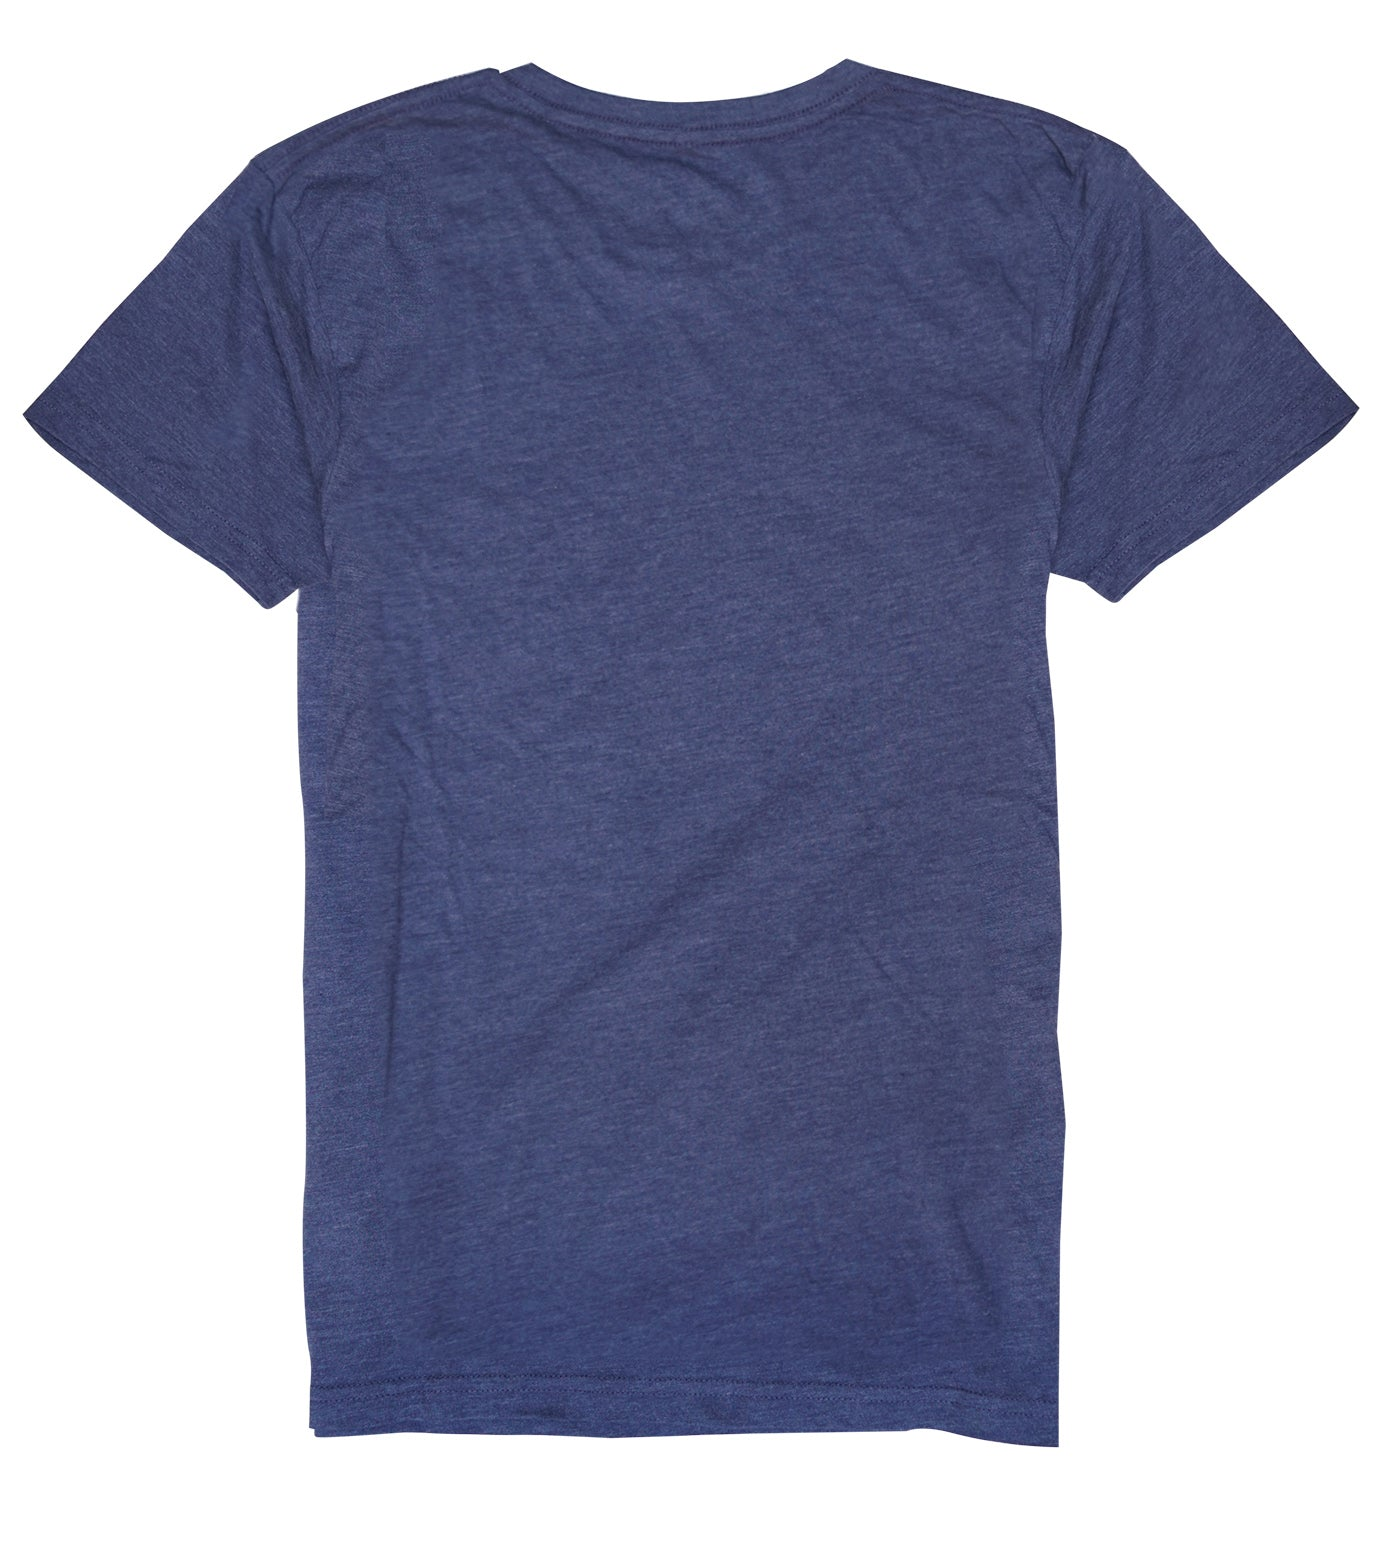 Vicious Beach Life Tee - Slate Blue